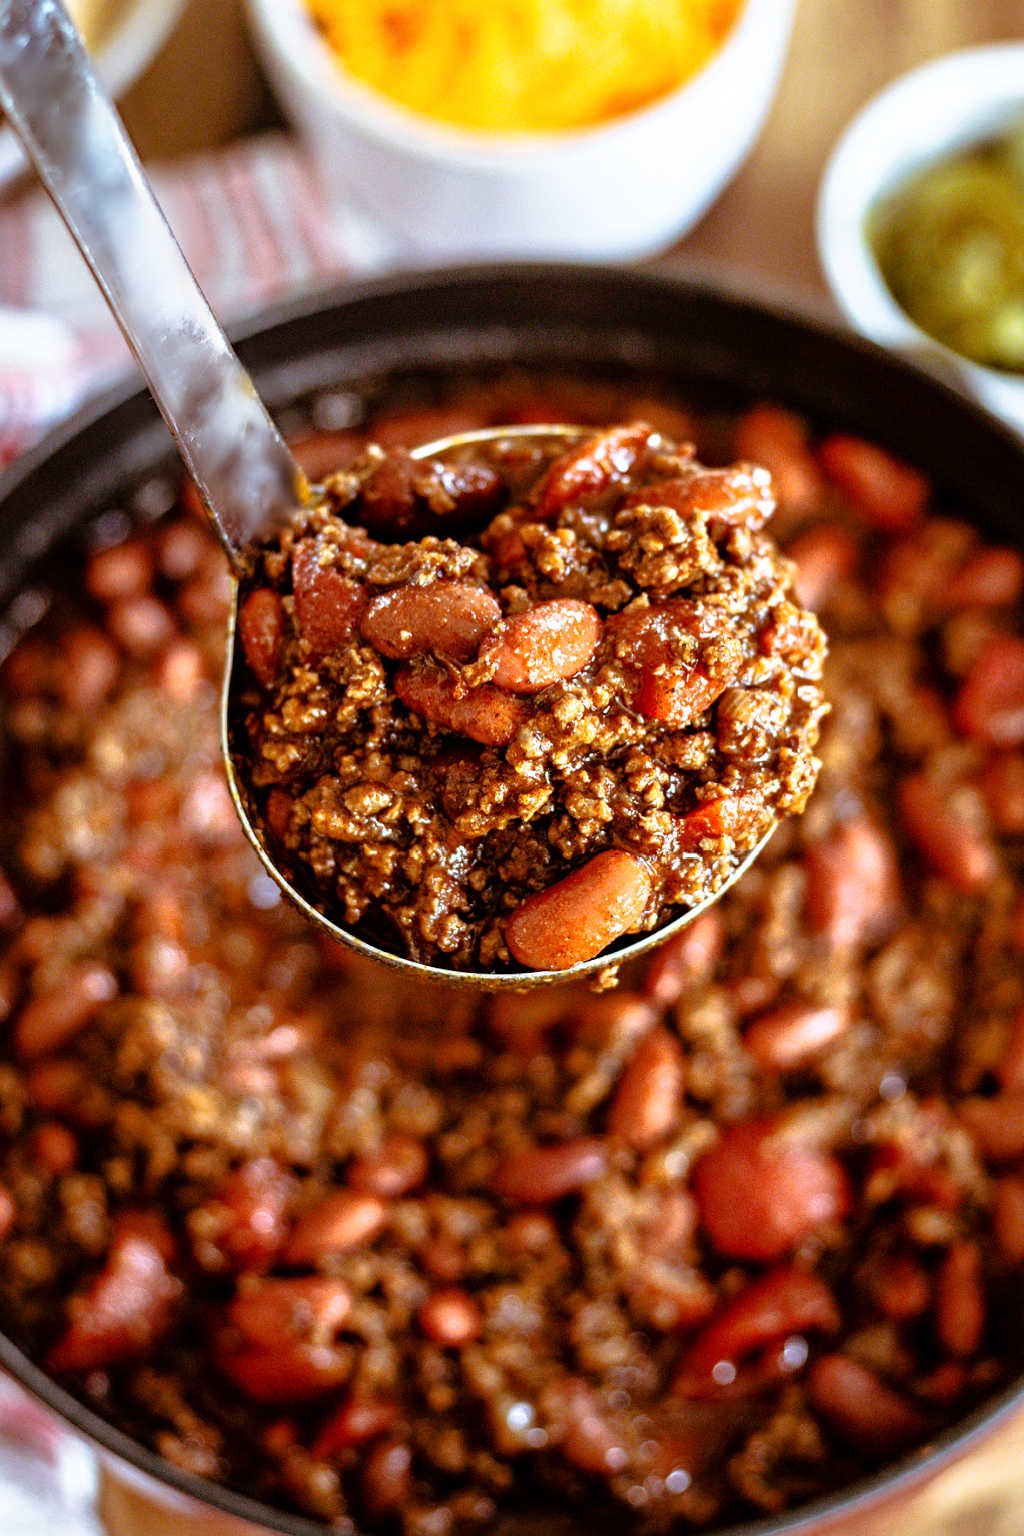 a ladle full of ground beef chili lifted out of a pot